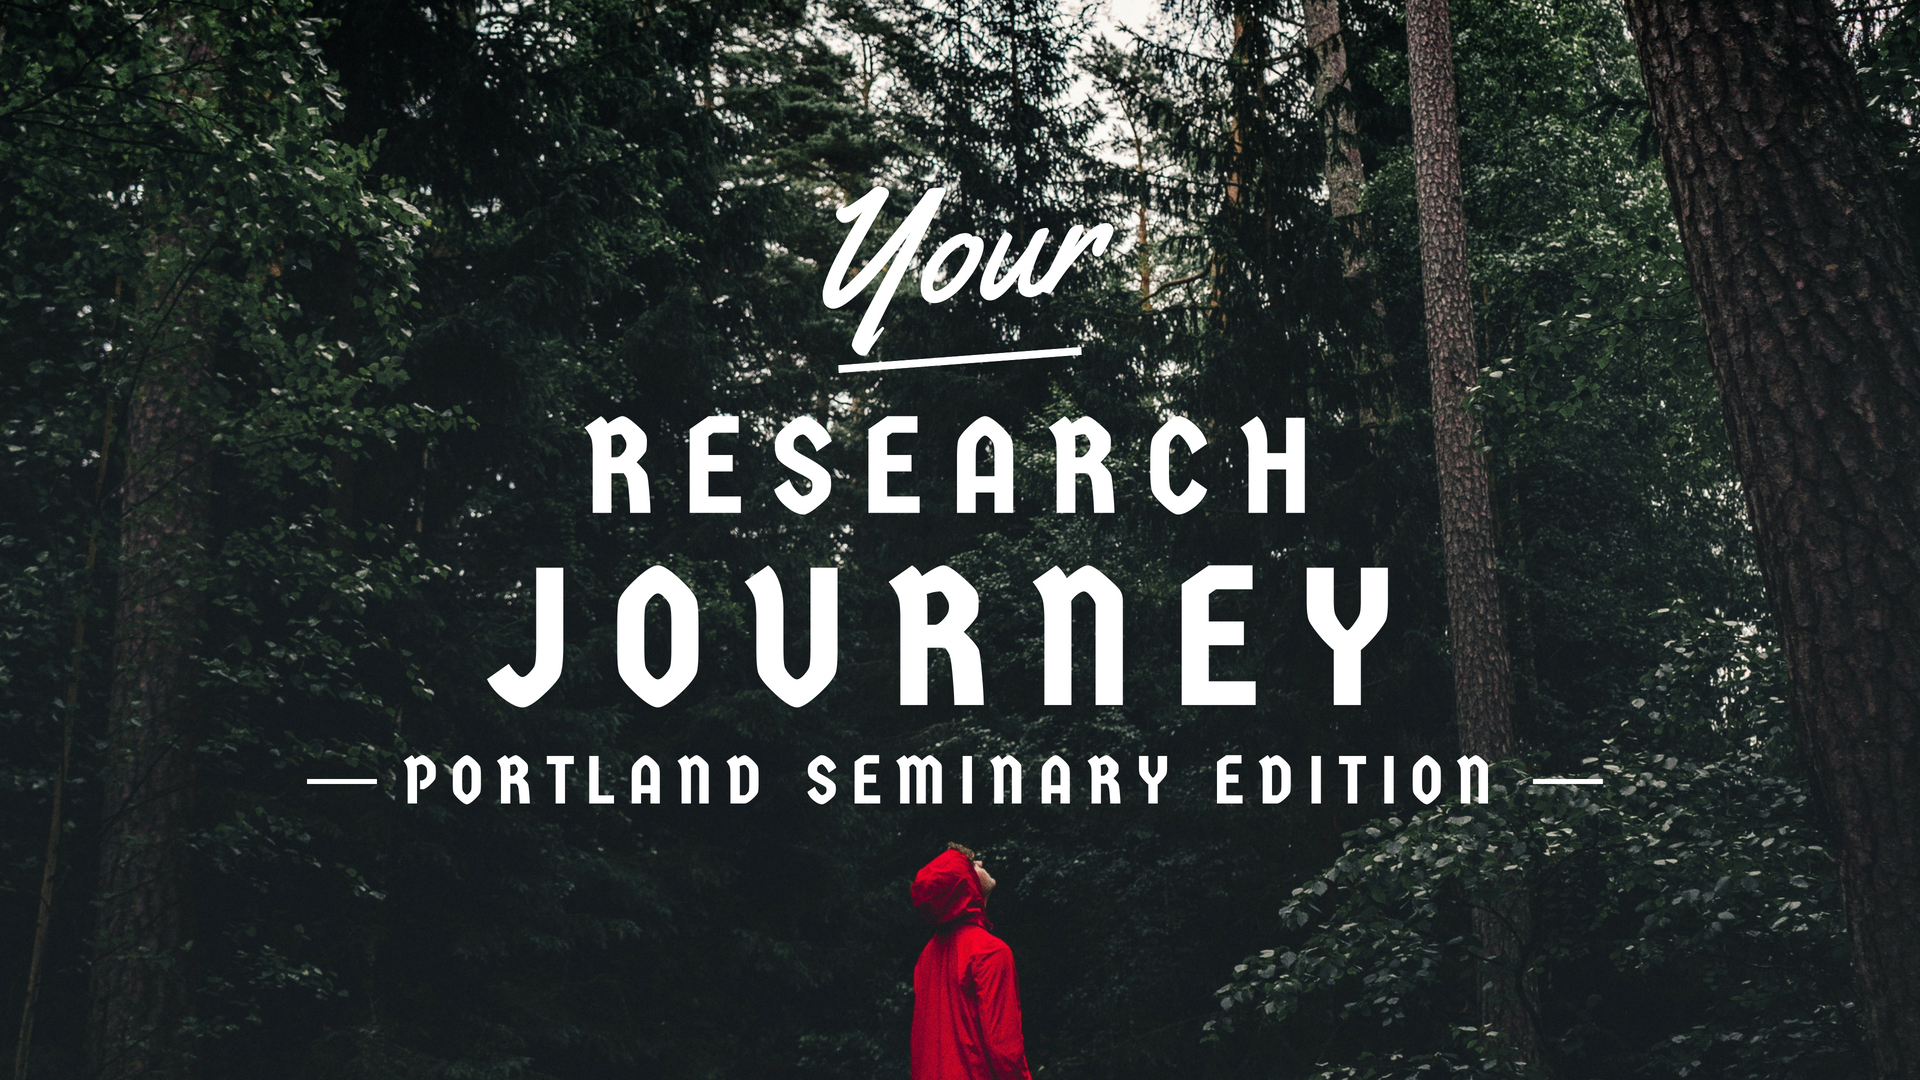 Your Research Journey: Portland Seminary Edition